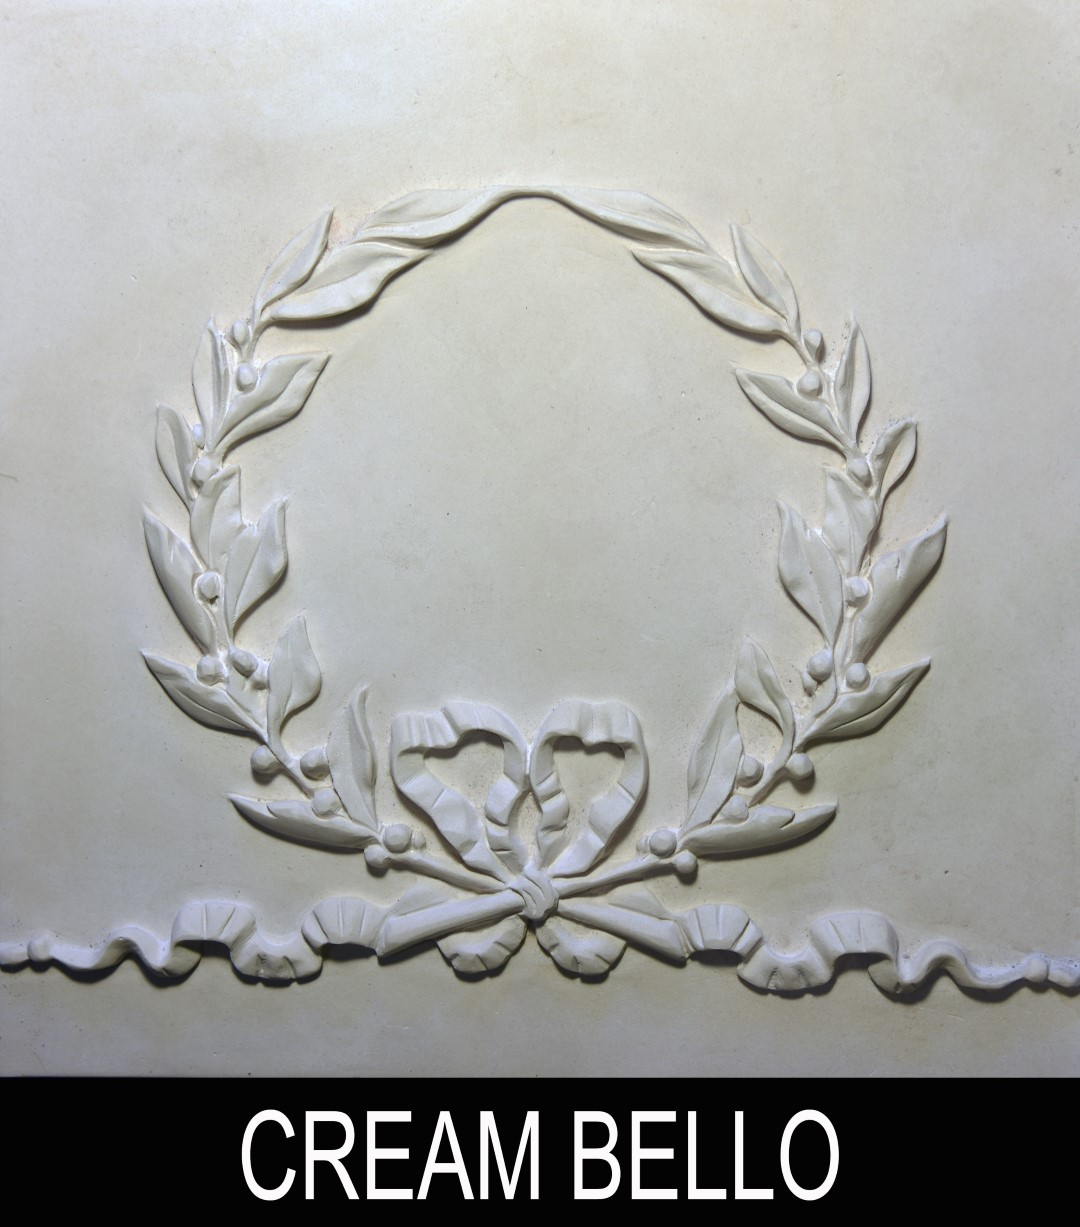 cream-bello-thumb.jpg